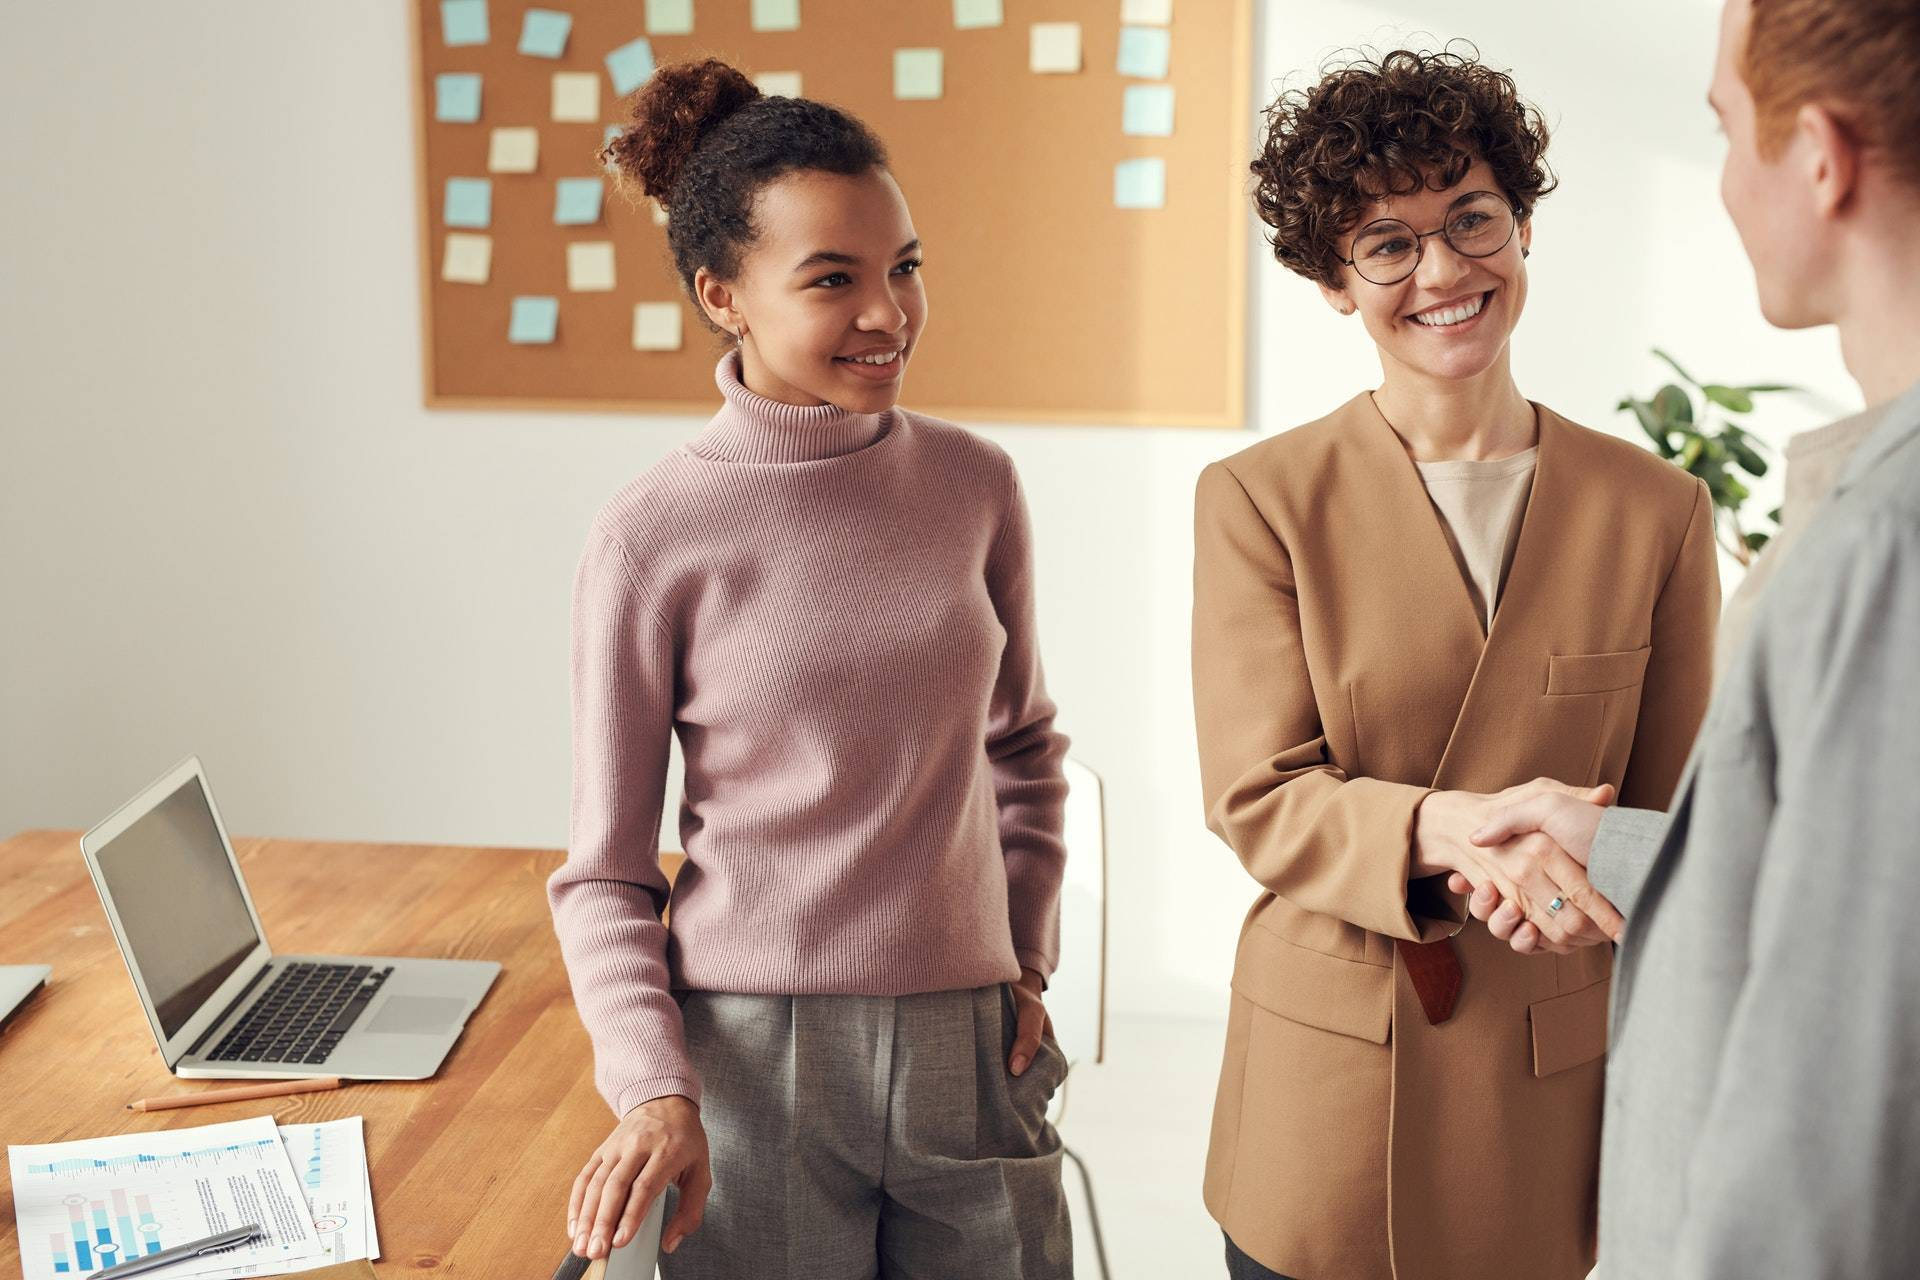 What do you need to know about potential business partners?